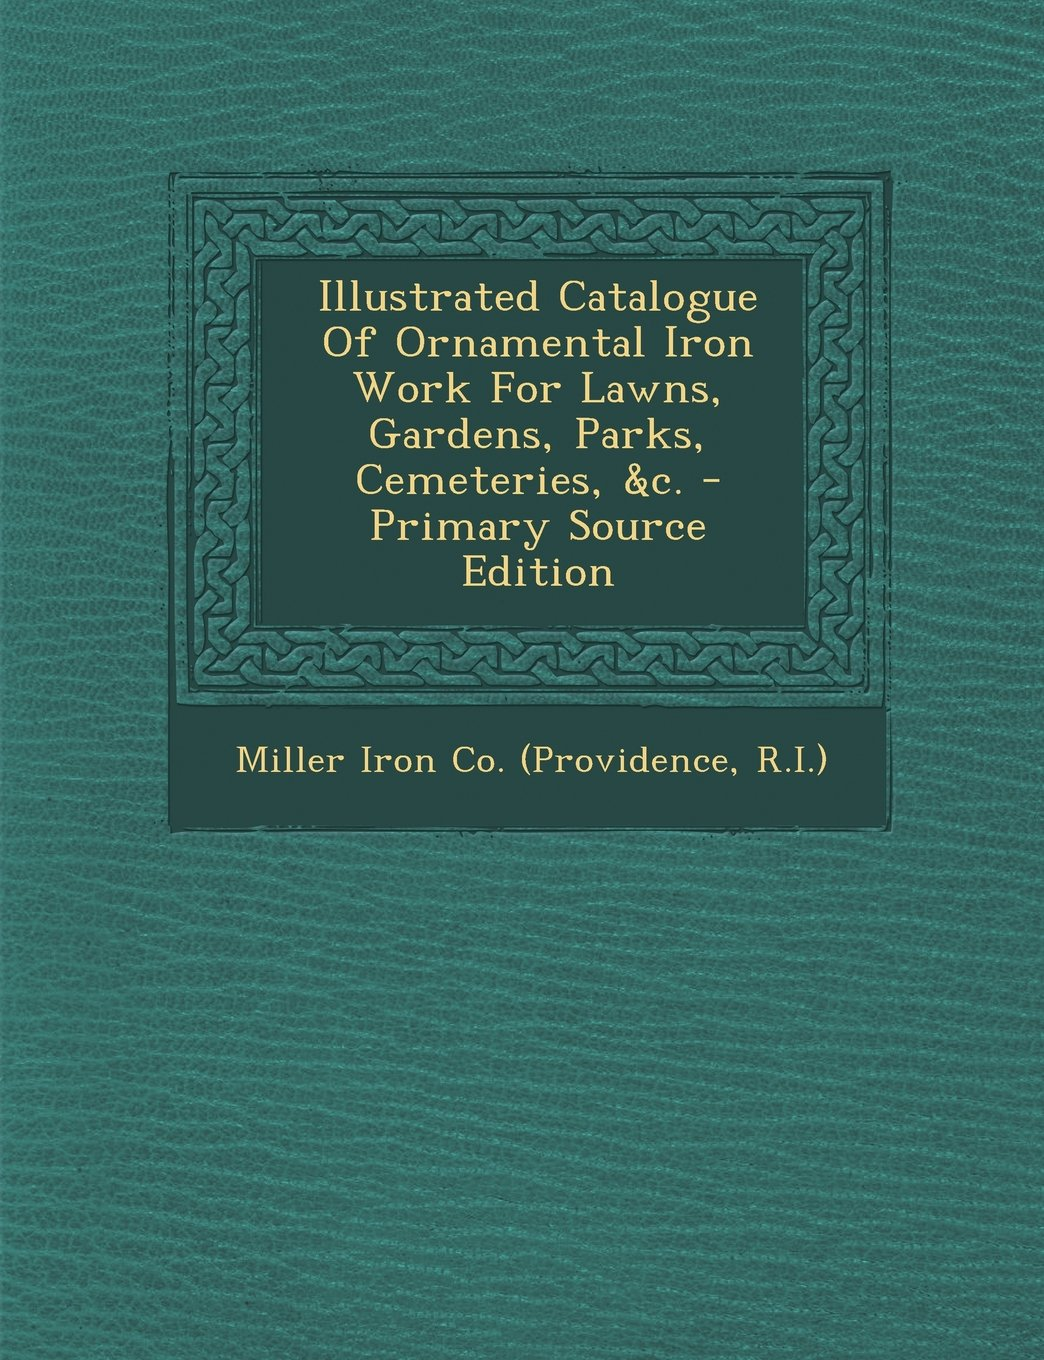 Read Online Illustrated Catalogue of Ornamental Iron Work for Lawns, Gardens, Parks, Cemeteries, &C. - Primary Source Edition PDF